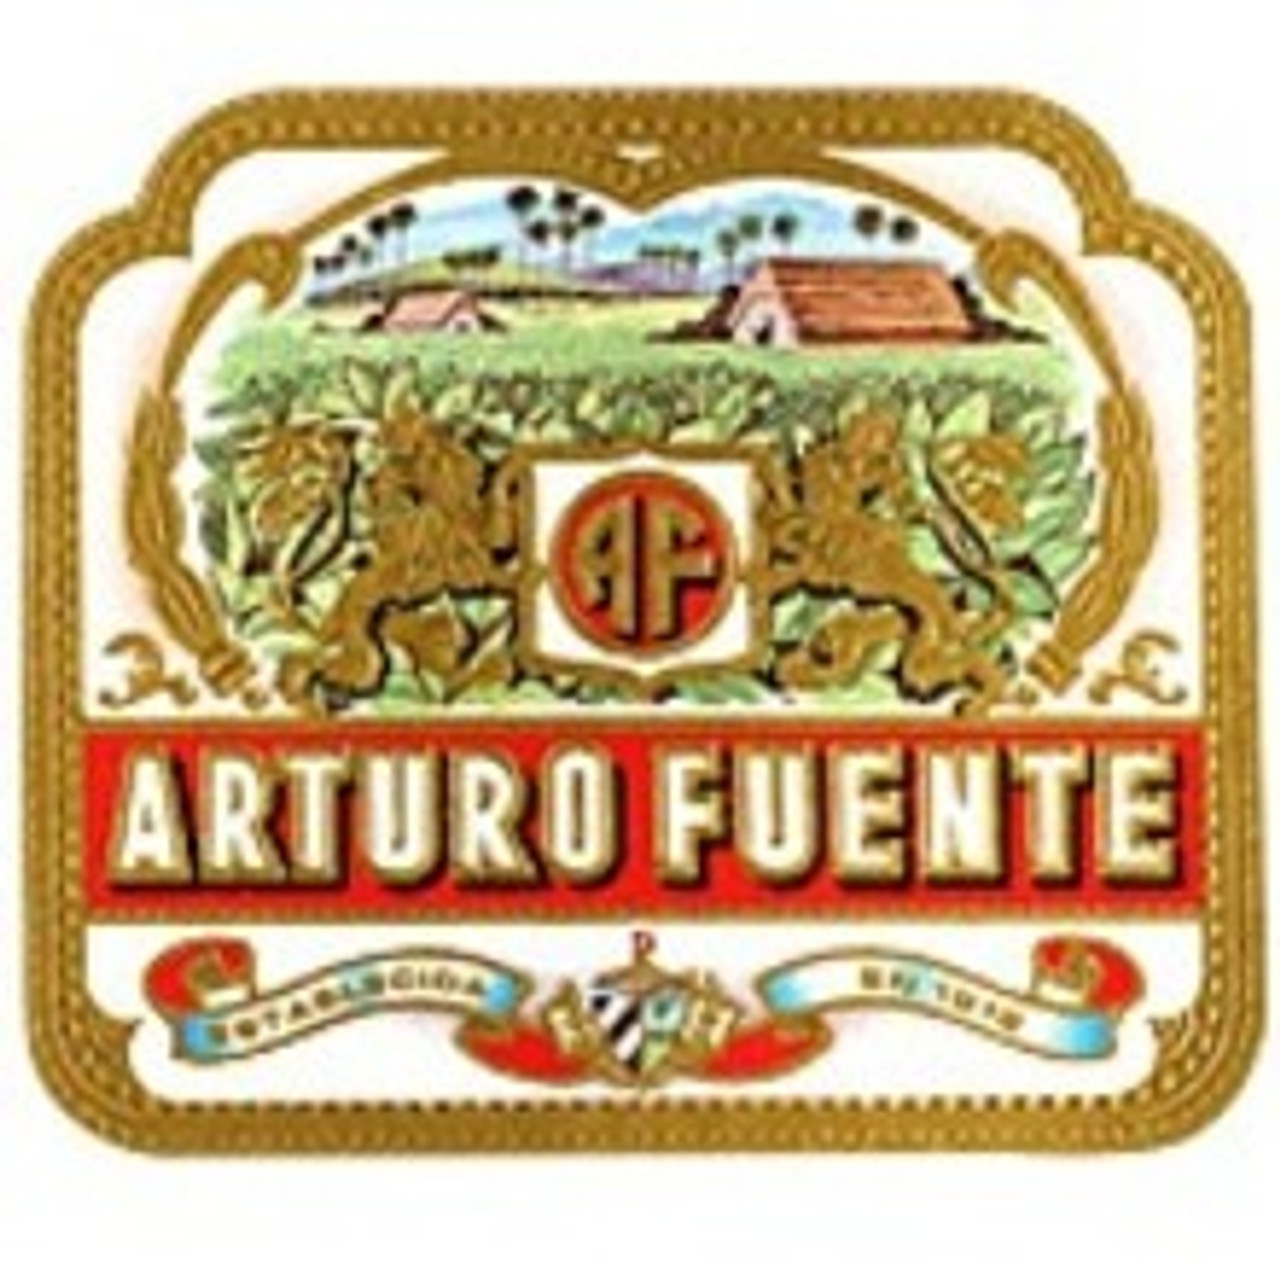 Arturo Fuente Exquisito Maduro Cigars - 4 1/2 X 32 (Box of 50)